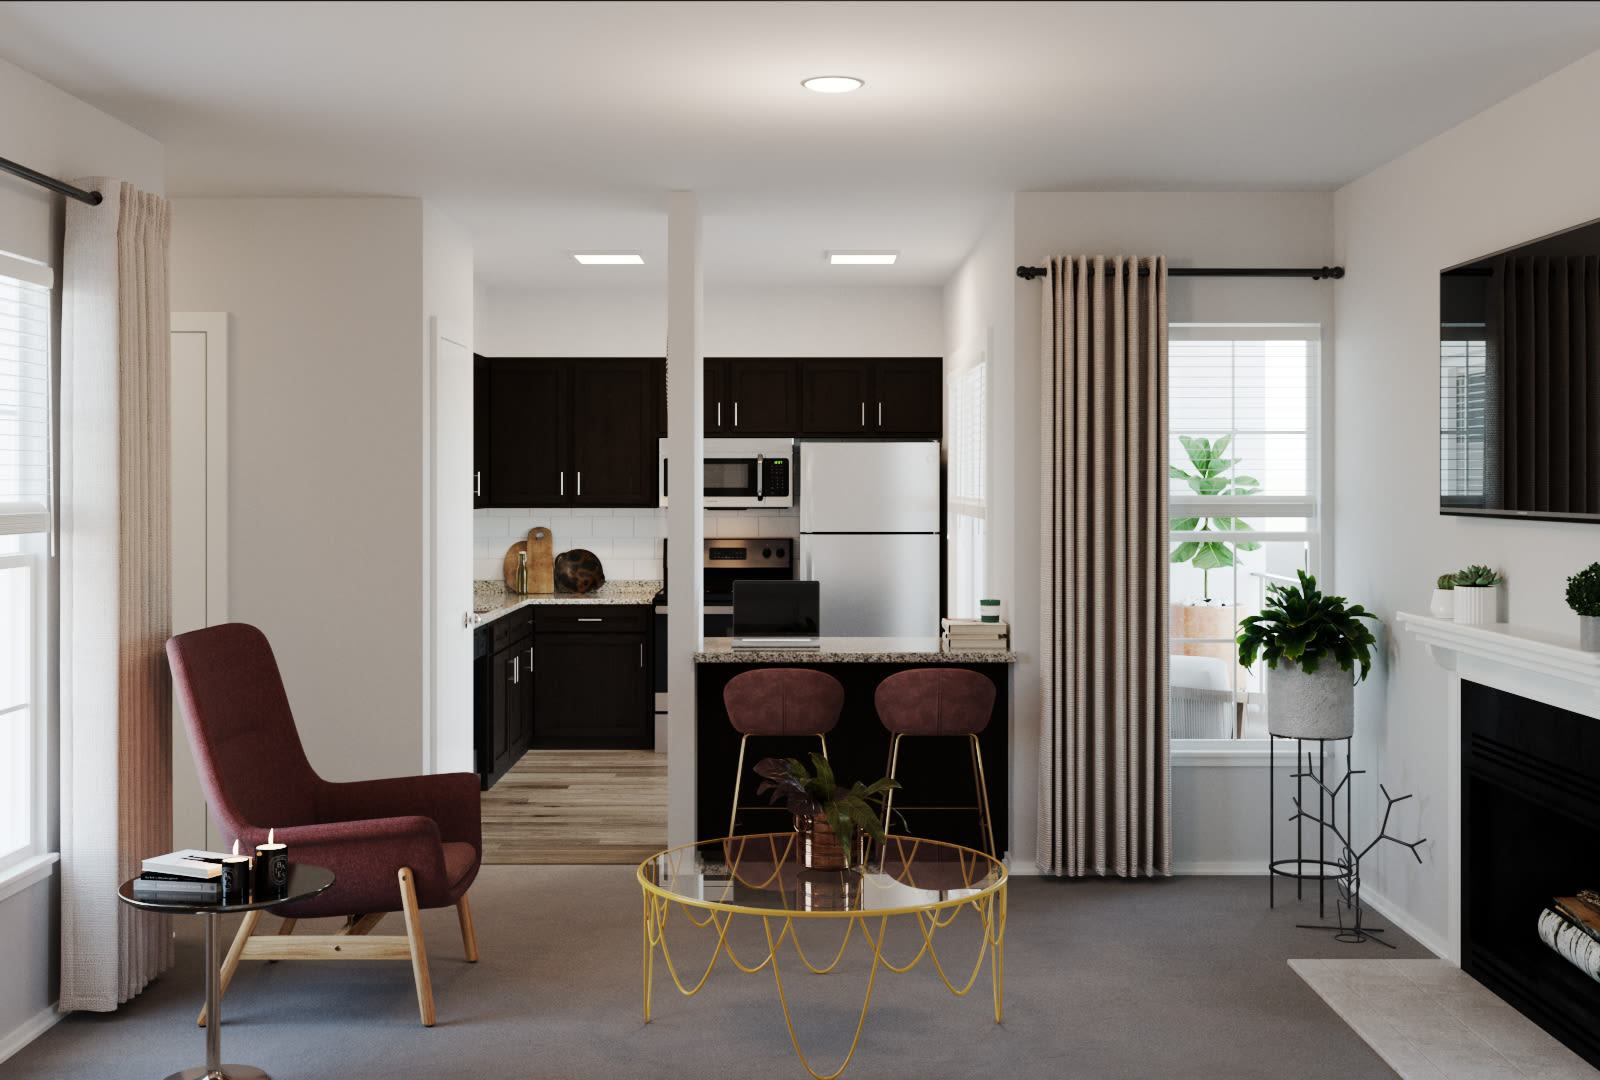 View virtual tour for 1 bedroom 1 bathroom unit at The Regent in Dallas, Texas